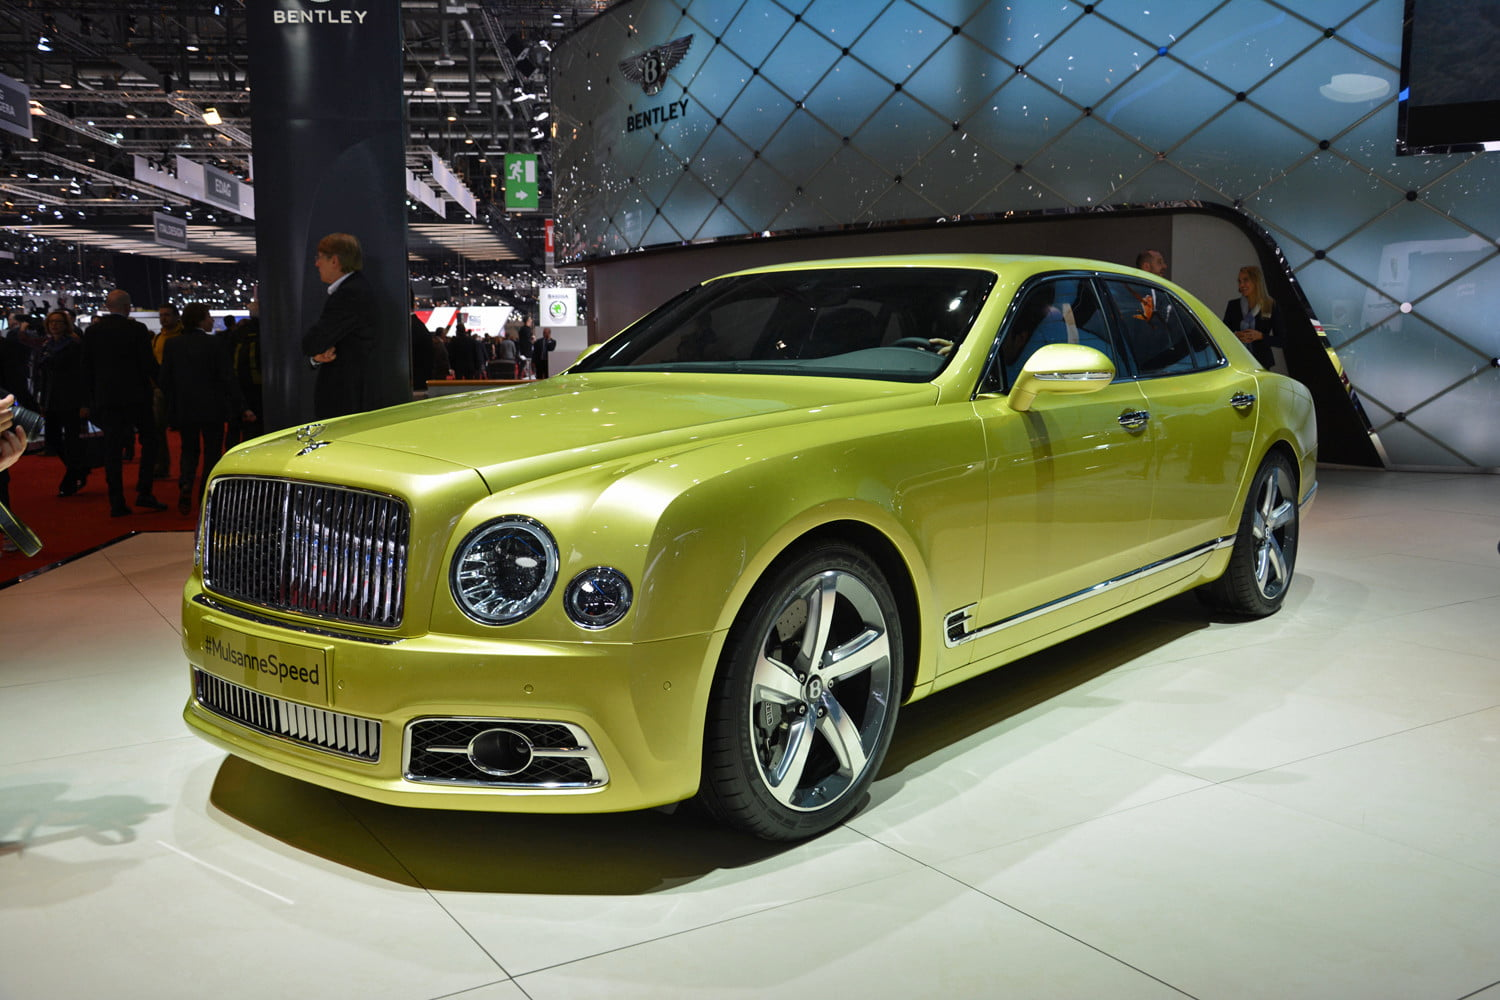 2017 Bentley Mulsanne | Photos, details, specs | Digital Trends on bmw 5 series owners manual, audi a6 owners manual, bmw 3 series owners manual, aston martin vantage owners manual, chrysler 300 owners manual,